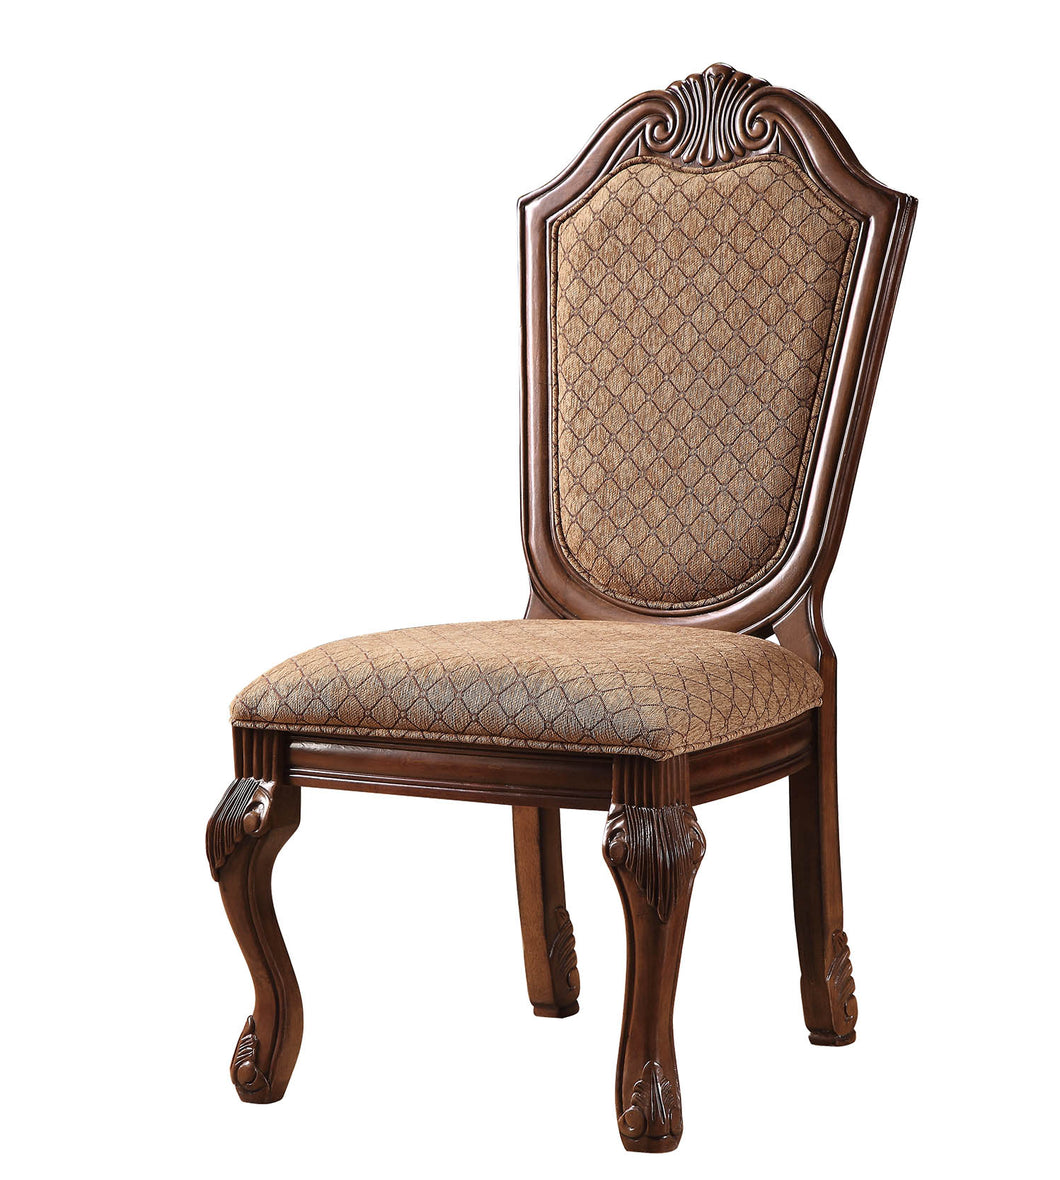 Chateau De Ville Fabric & Cherry Side Chair image